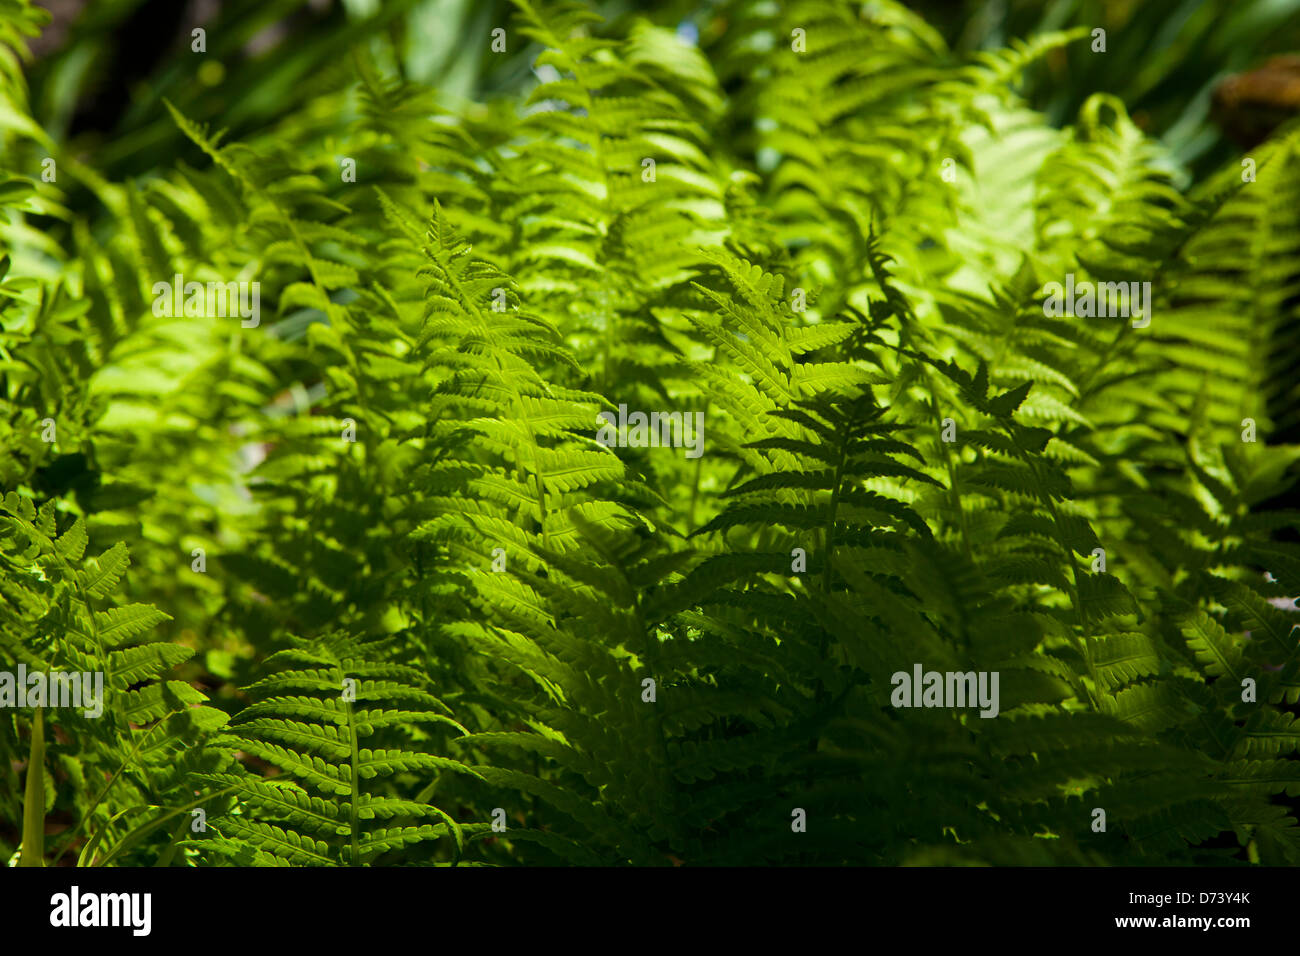 Common ferns - Stock Image